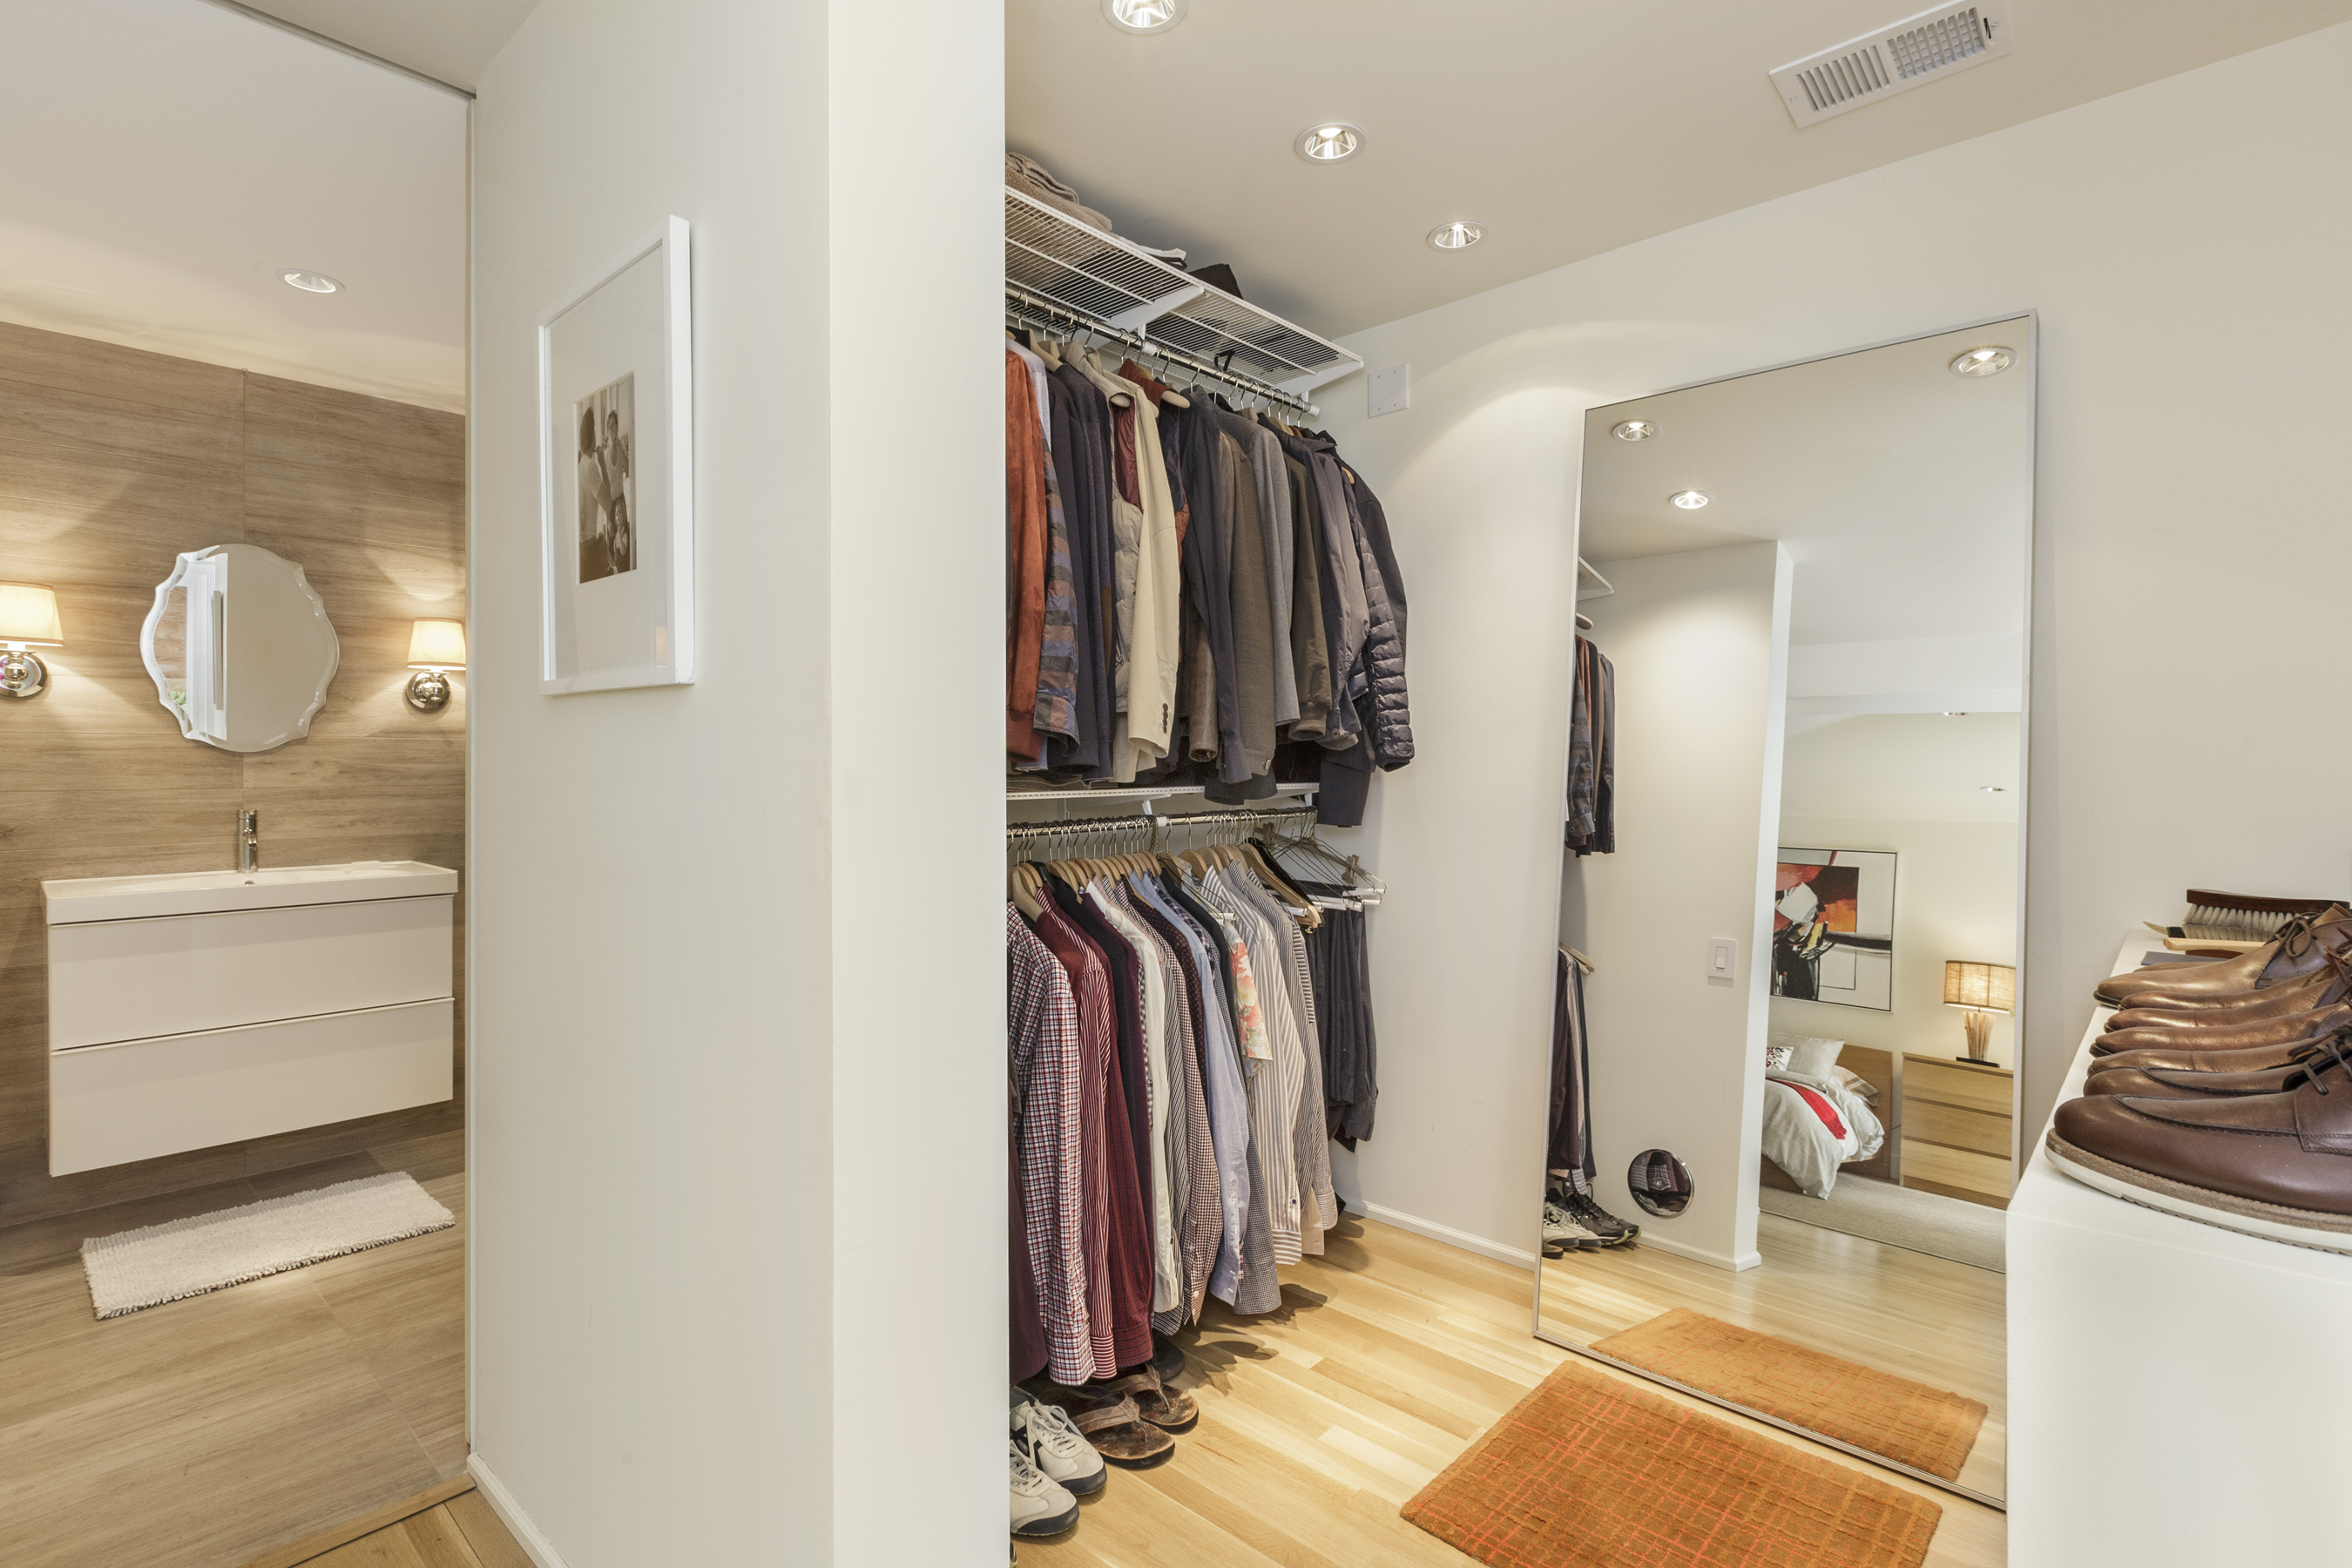 Sold 1957 11th ave golden gate heights 1 400 000 for Master bathroom with walk in closet